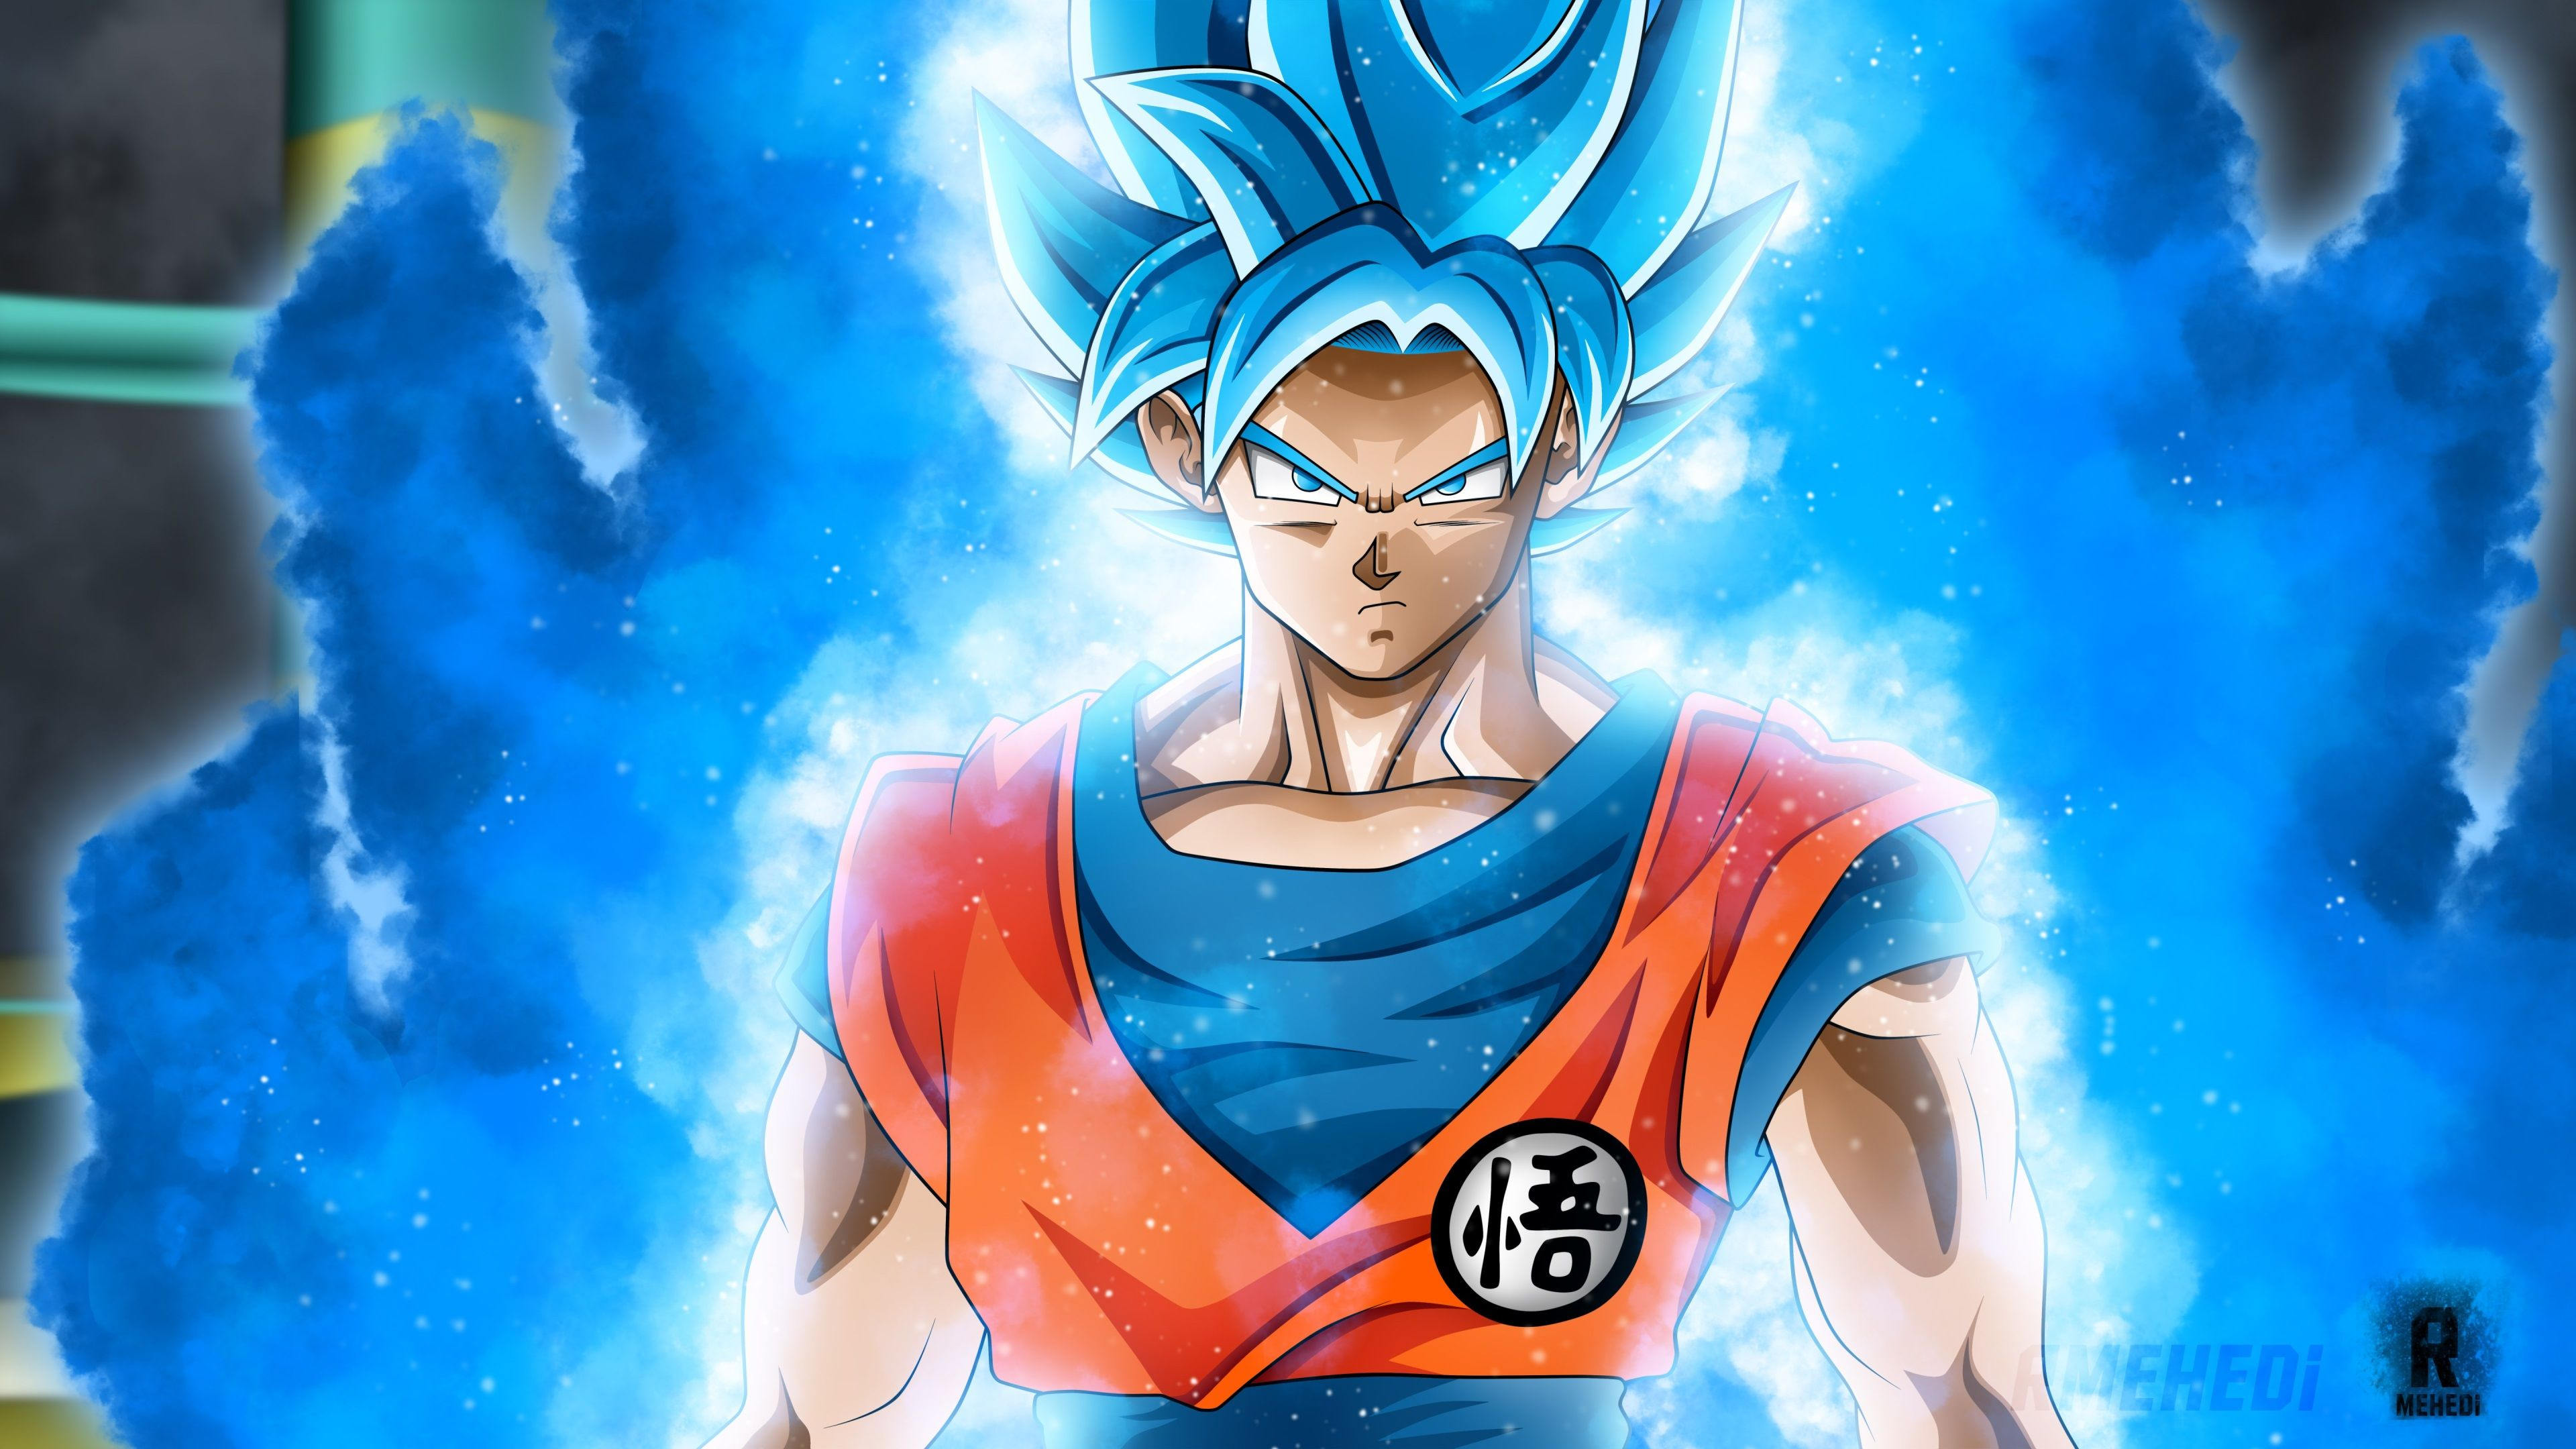 Dbz 4k Pc Wallpapers Top Free Dbz 4k Pc Backgrounds